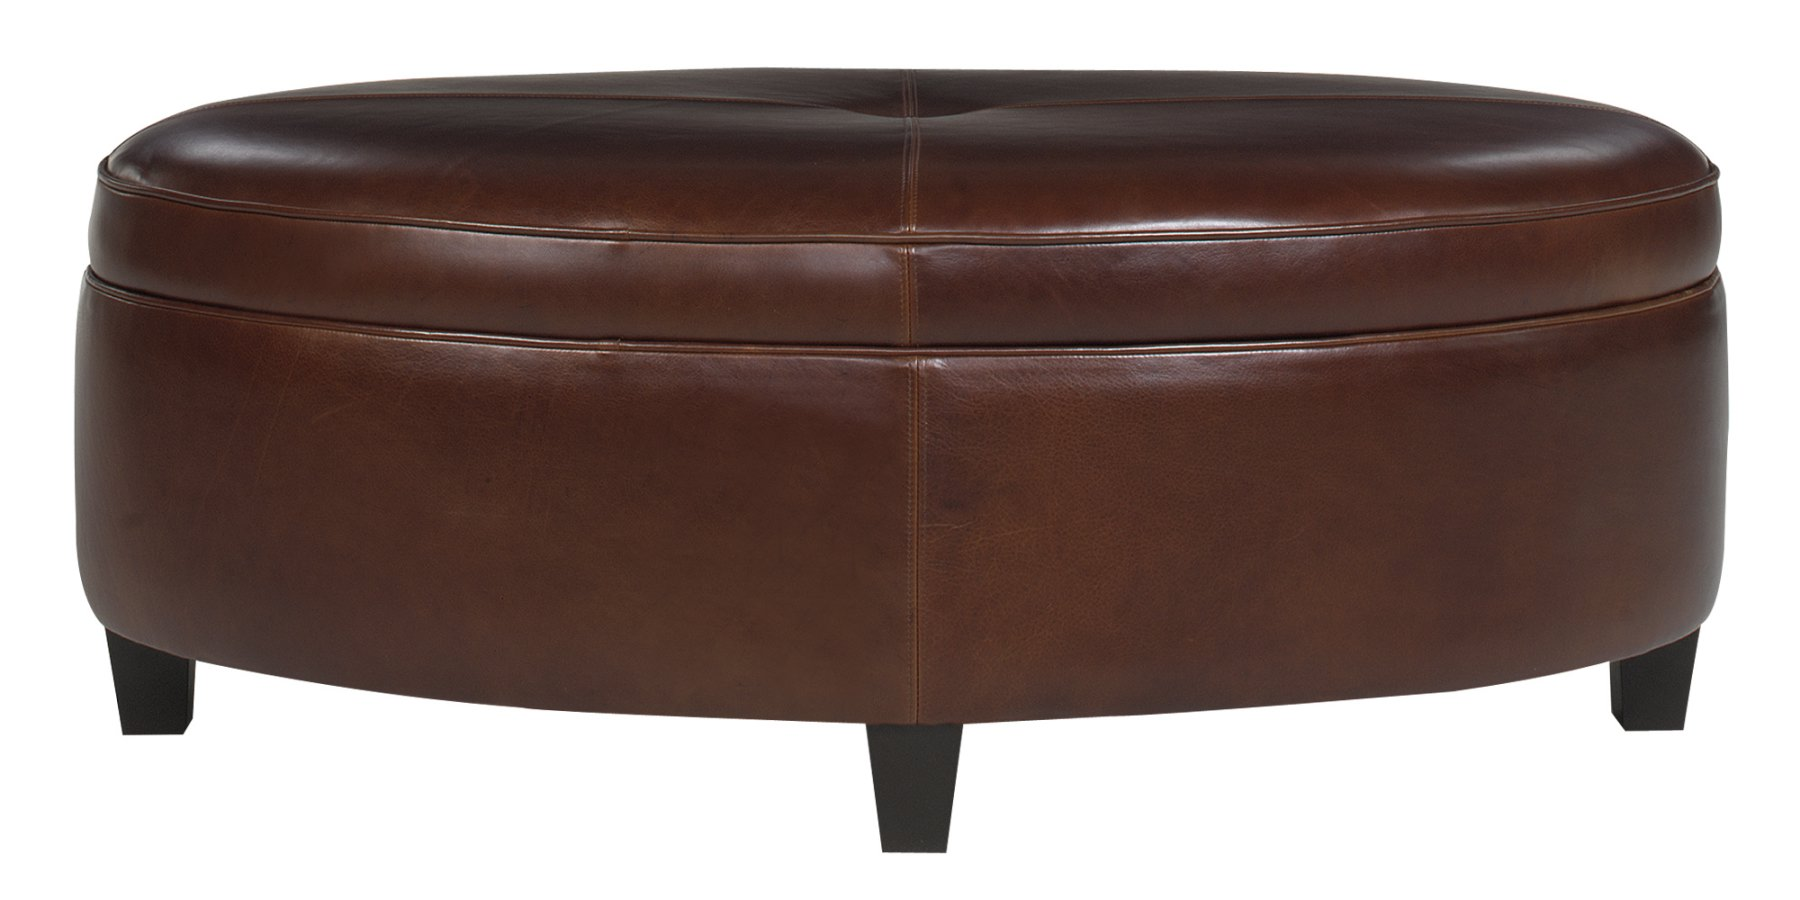 Large Round Leather Ottoman Coffee Table Avery Designer Style Leather Upholstered Oversized Oval Storage Ottoman (View 5 of 10)